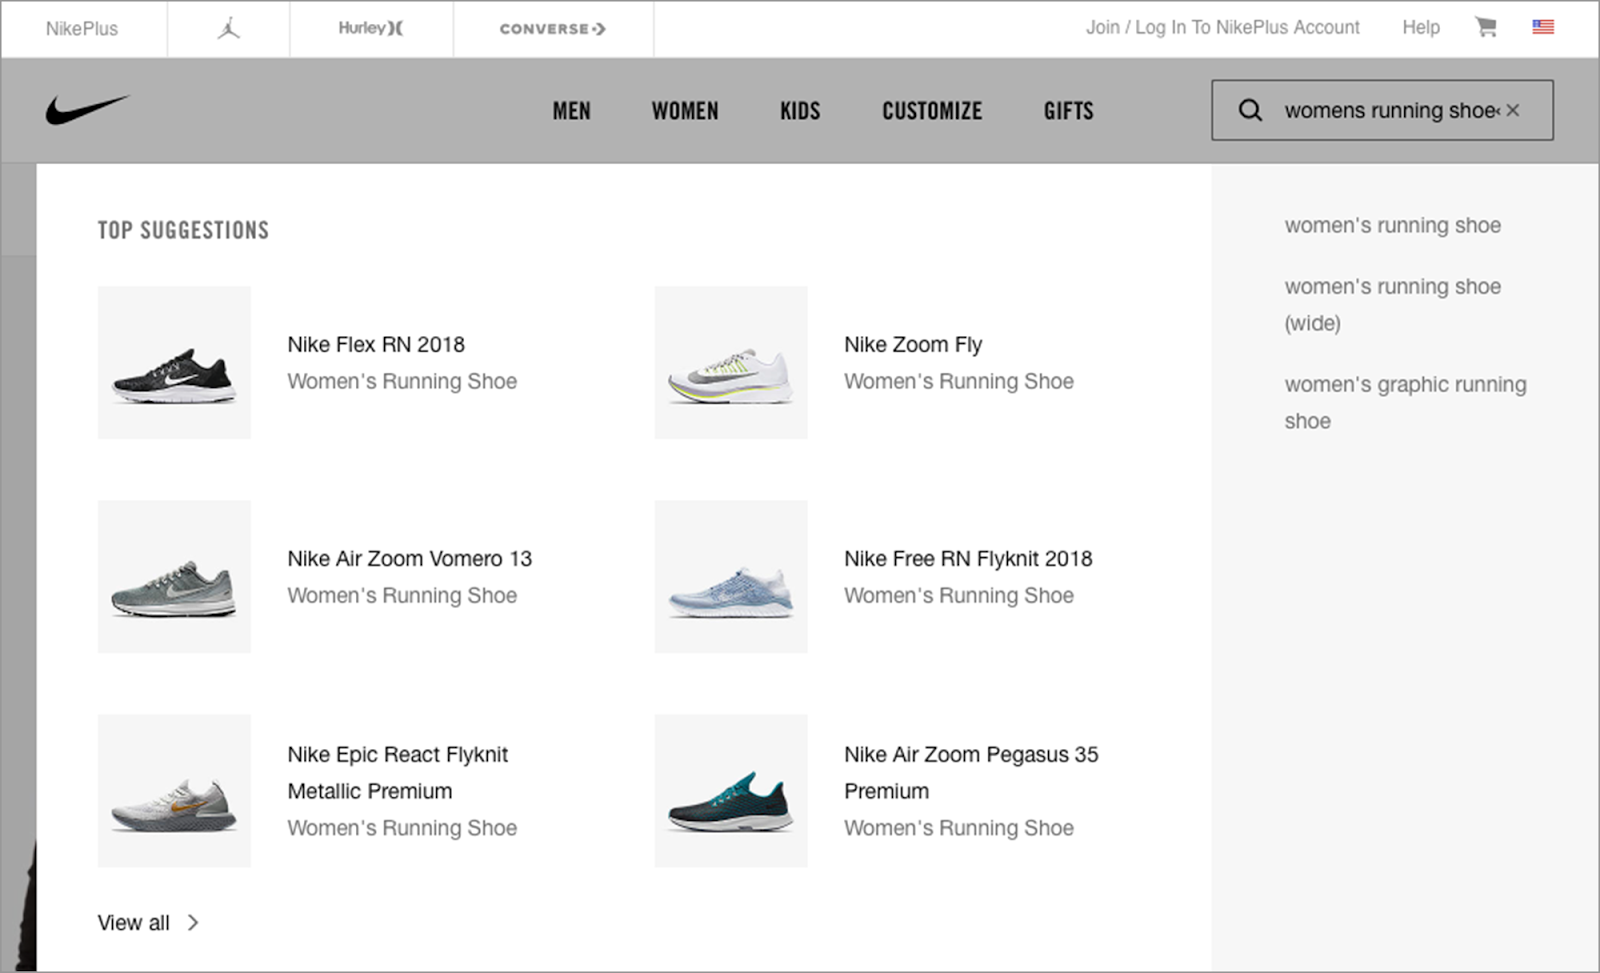 Nike uses a variety product photos matching a user's search input as part of their visual search results display.